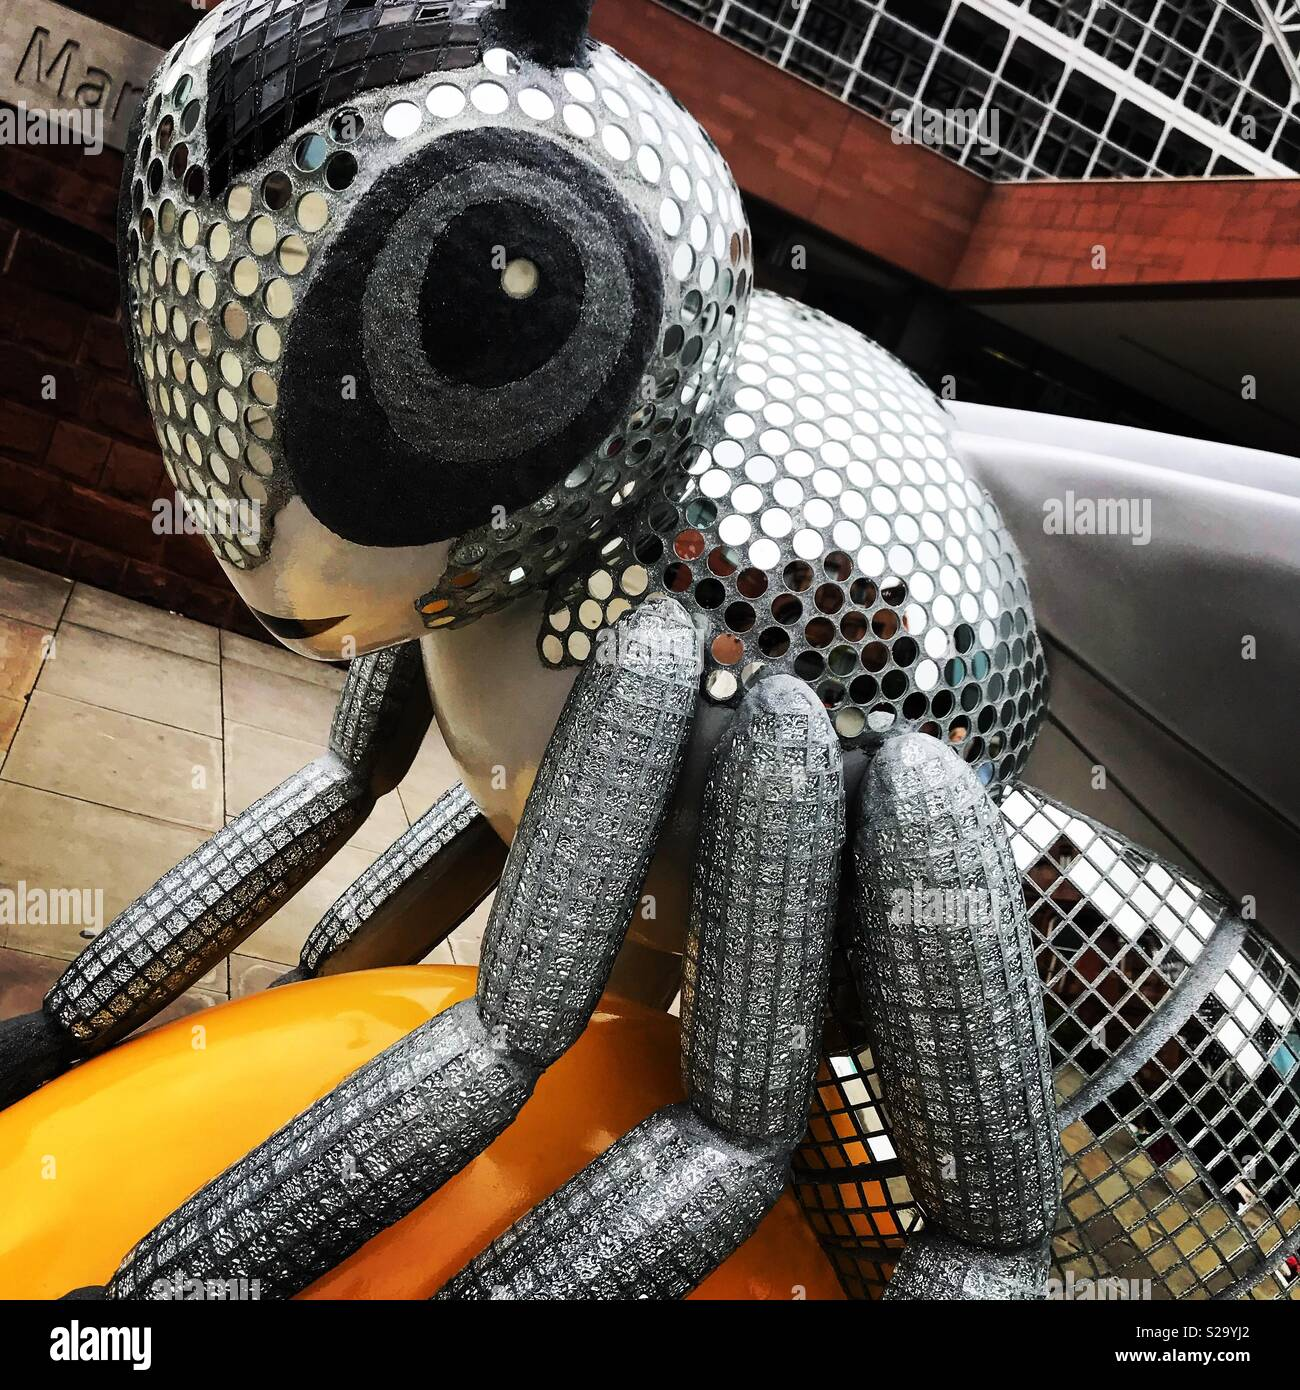 Bling bee, Manchester bee in the city trail - Stock Image